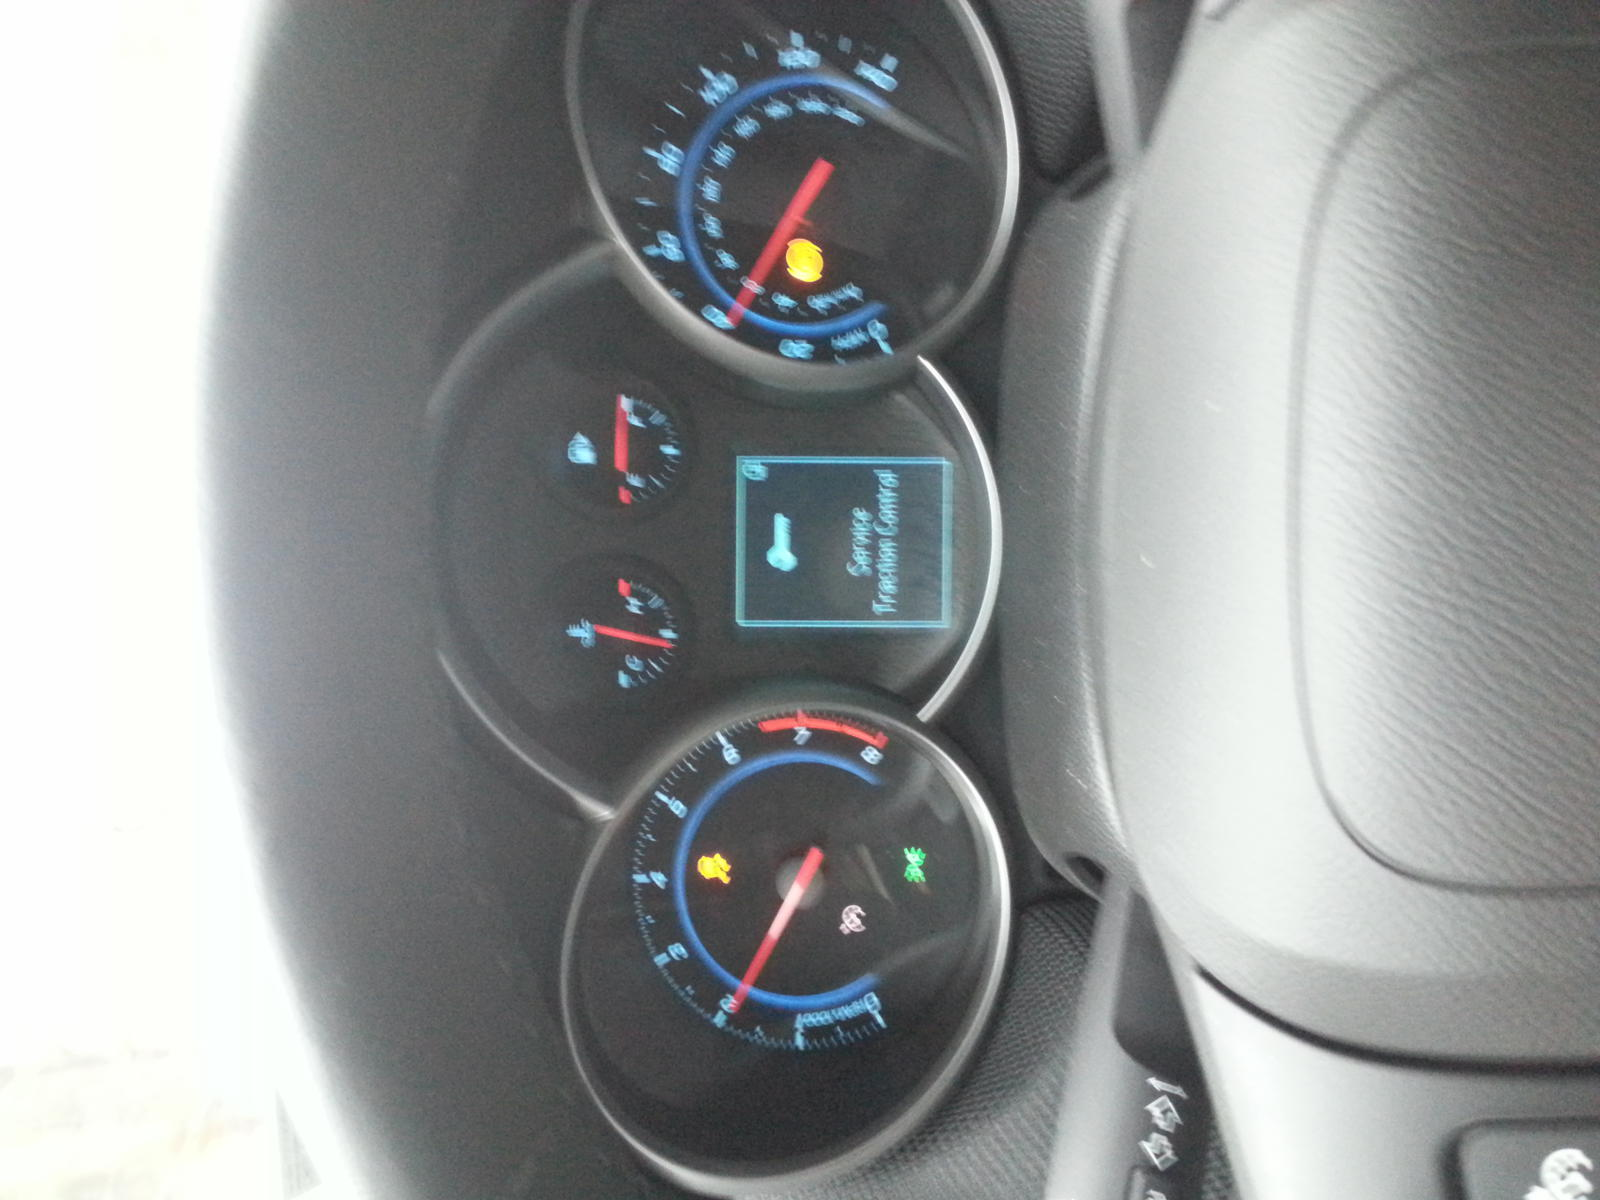 2013 chevy cruze service traction control light